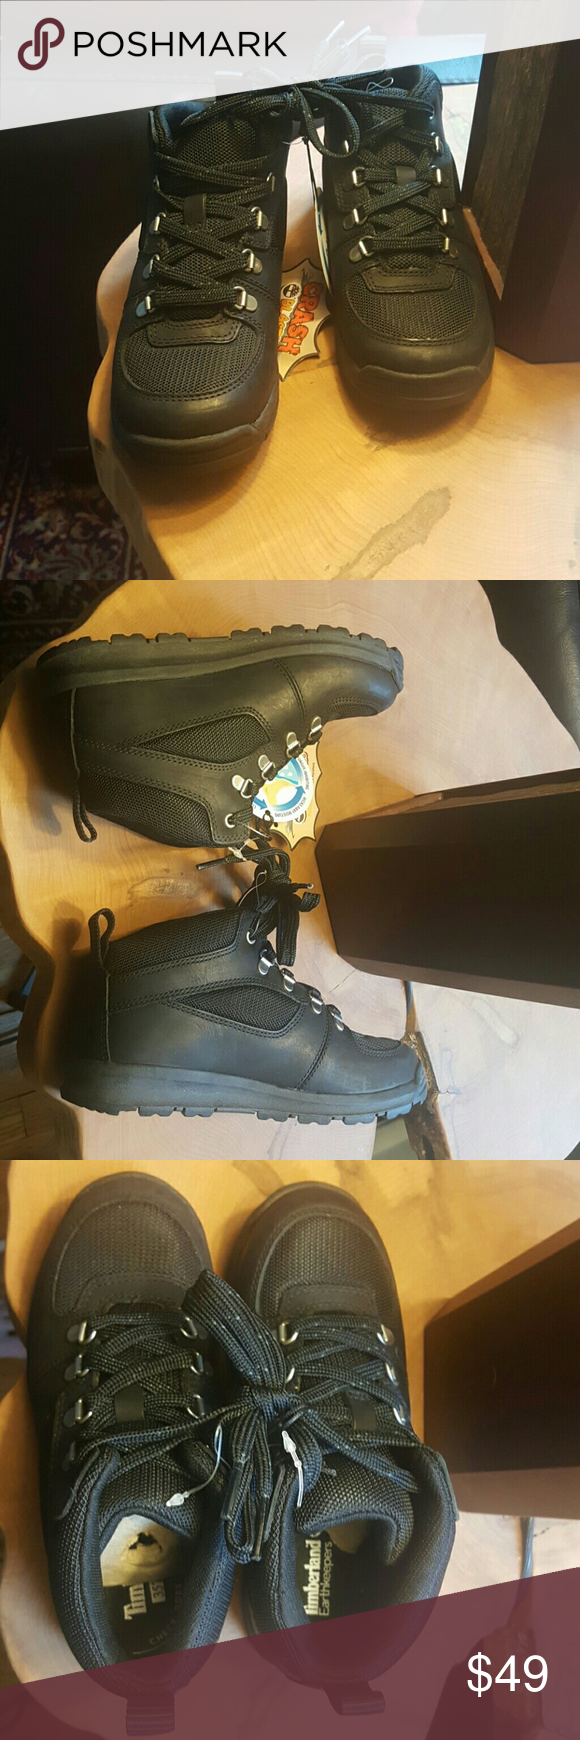 Dukes roller shoes - New Timberland Earth Keepers Size 13 Youth Boys Nwt